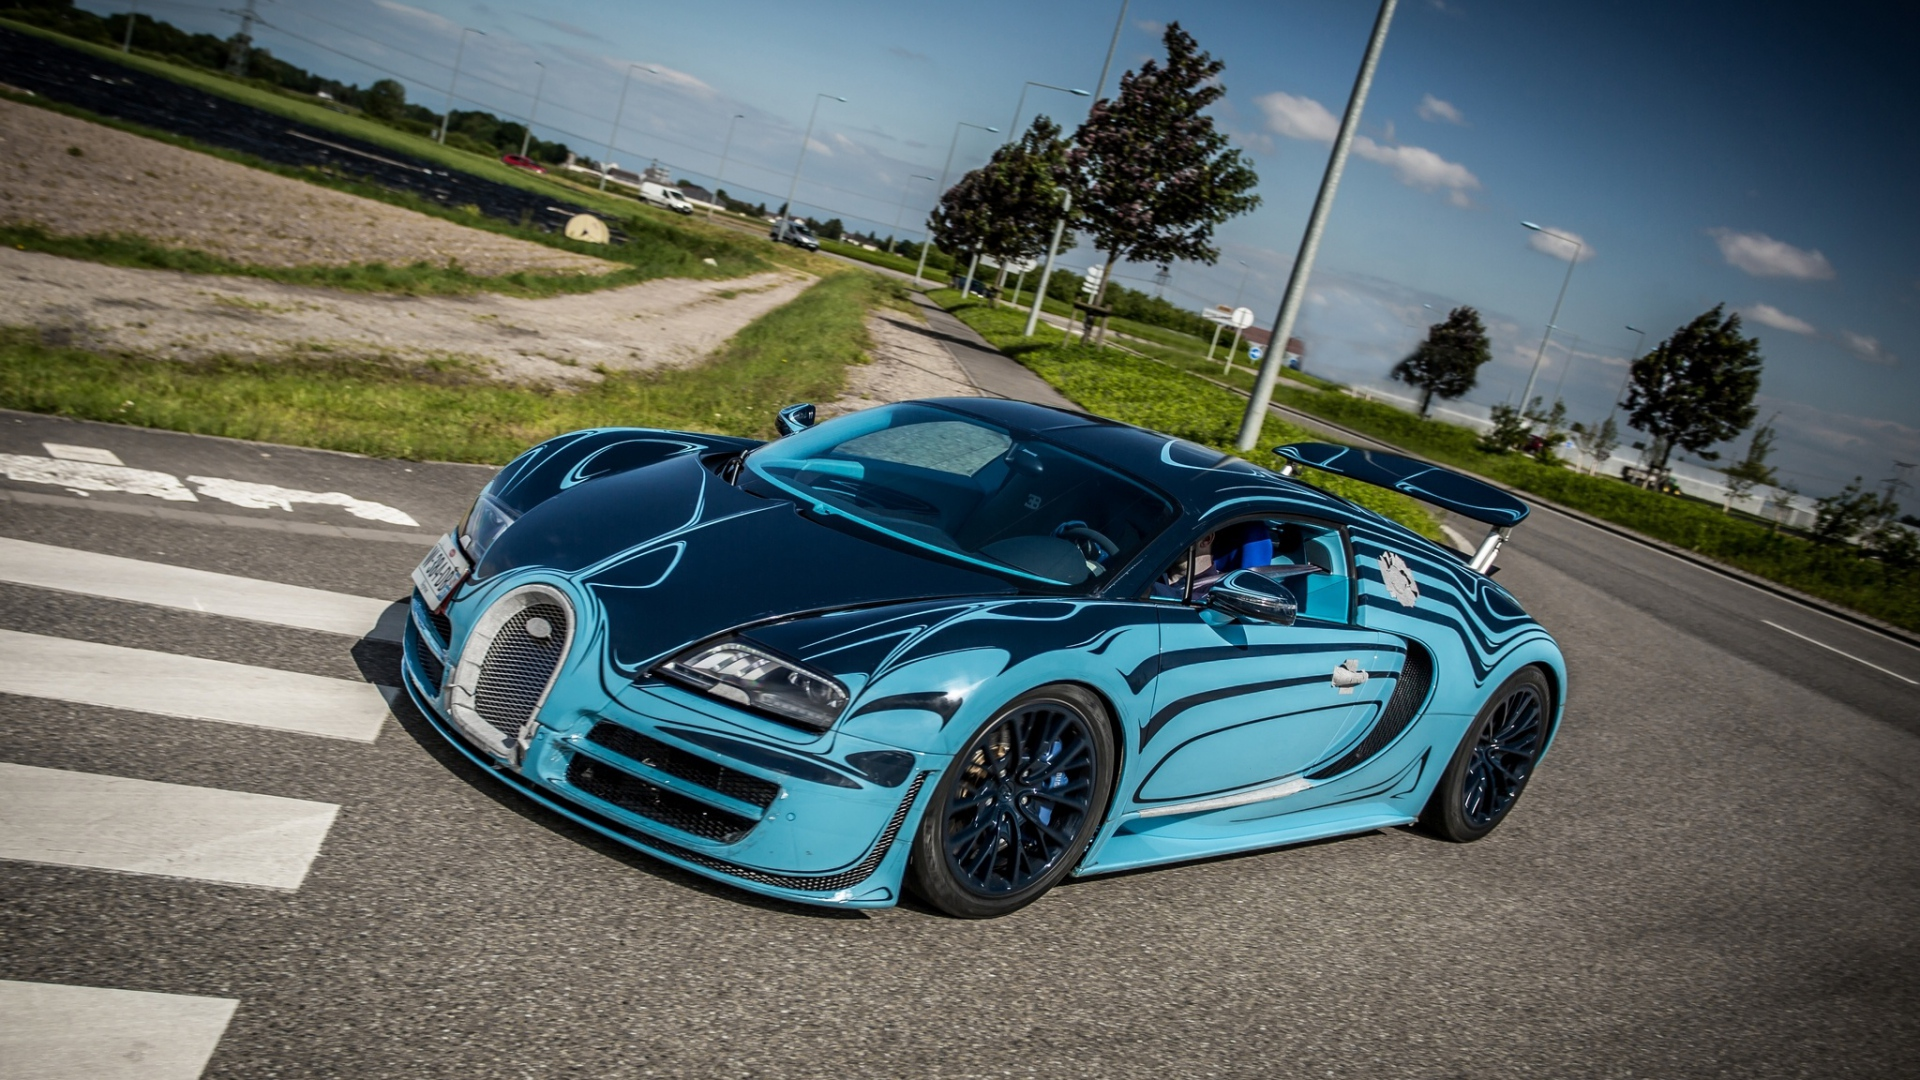 Bugatti Veyron Super Sport Full Hd Wallpaper: Download Wallpaper 1920x1080 Bugatti, Veyron, Super, Sport